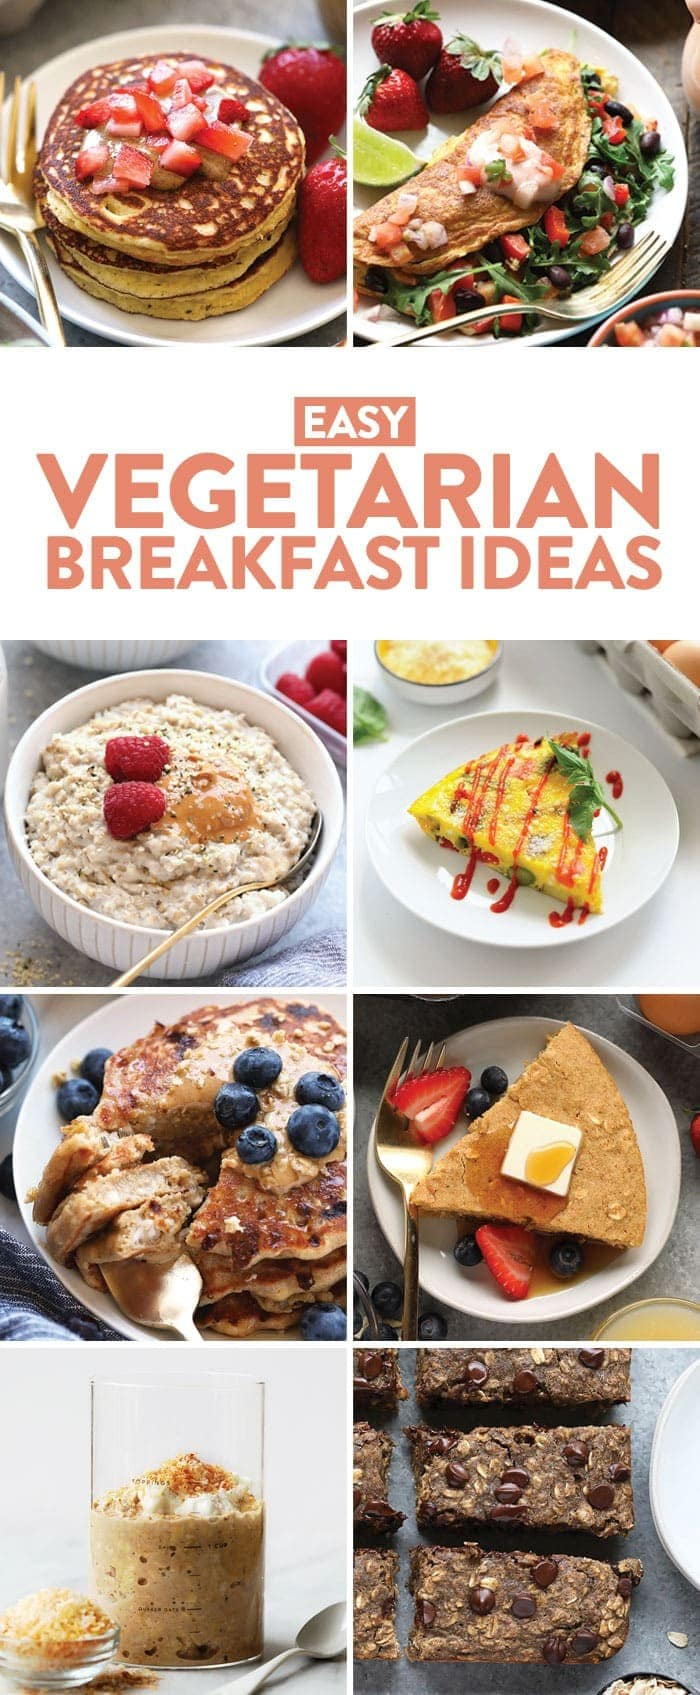 vegetarian breakfasts